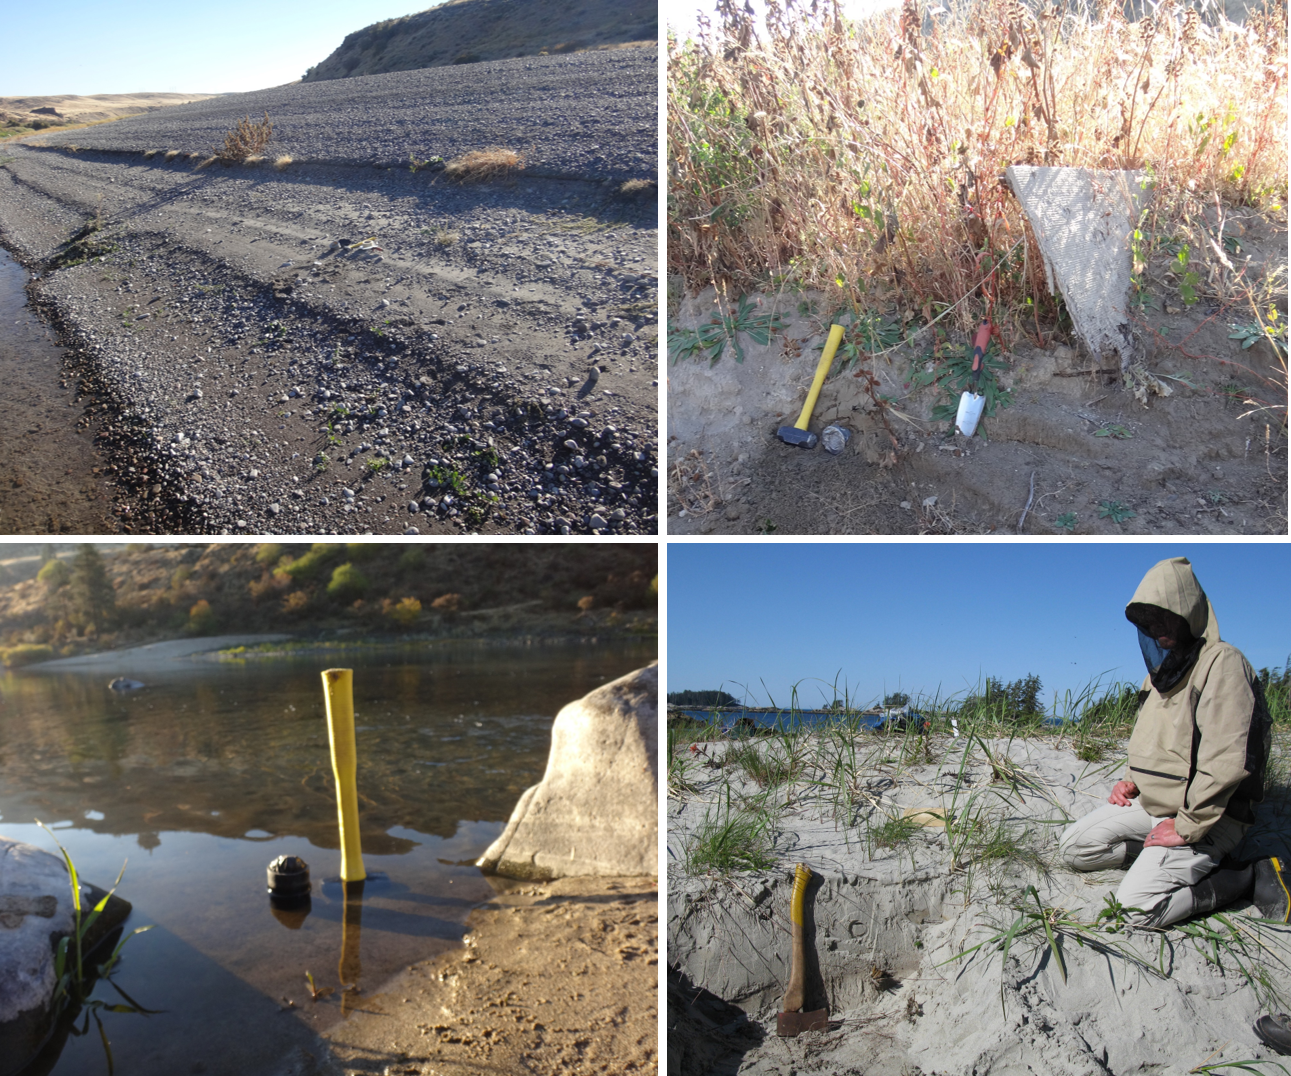 Modern samples should be collected at sites with bleaching conditions thought to be representative of the ancient samples of interest. (TOP LEFT) A modern sandy gravel bar in the Snake River, Idaho. (TOP RIGHT). A vegetated sand bar in the Snake River, Idaho. (BOTTOM LEFT) Shallow-water river sediments adjacent to an archaeological site in Idaho. PHOTO CREDITS: CHRISTINA NEUDORF. (BOTTOM RIGHT) The crest of a sand dune on Calvert Island, British Columbia. PHOTO CREDIT: OLAV LIAN